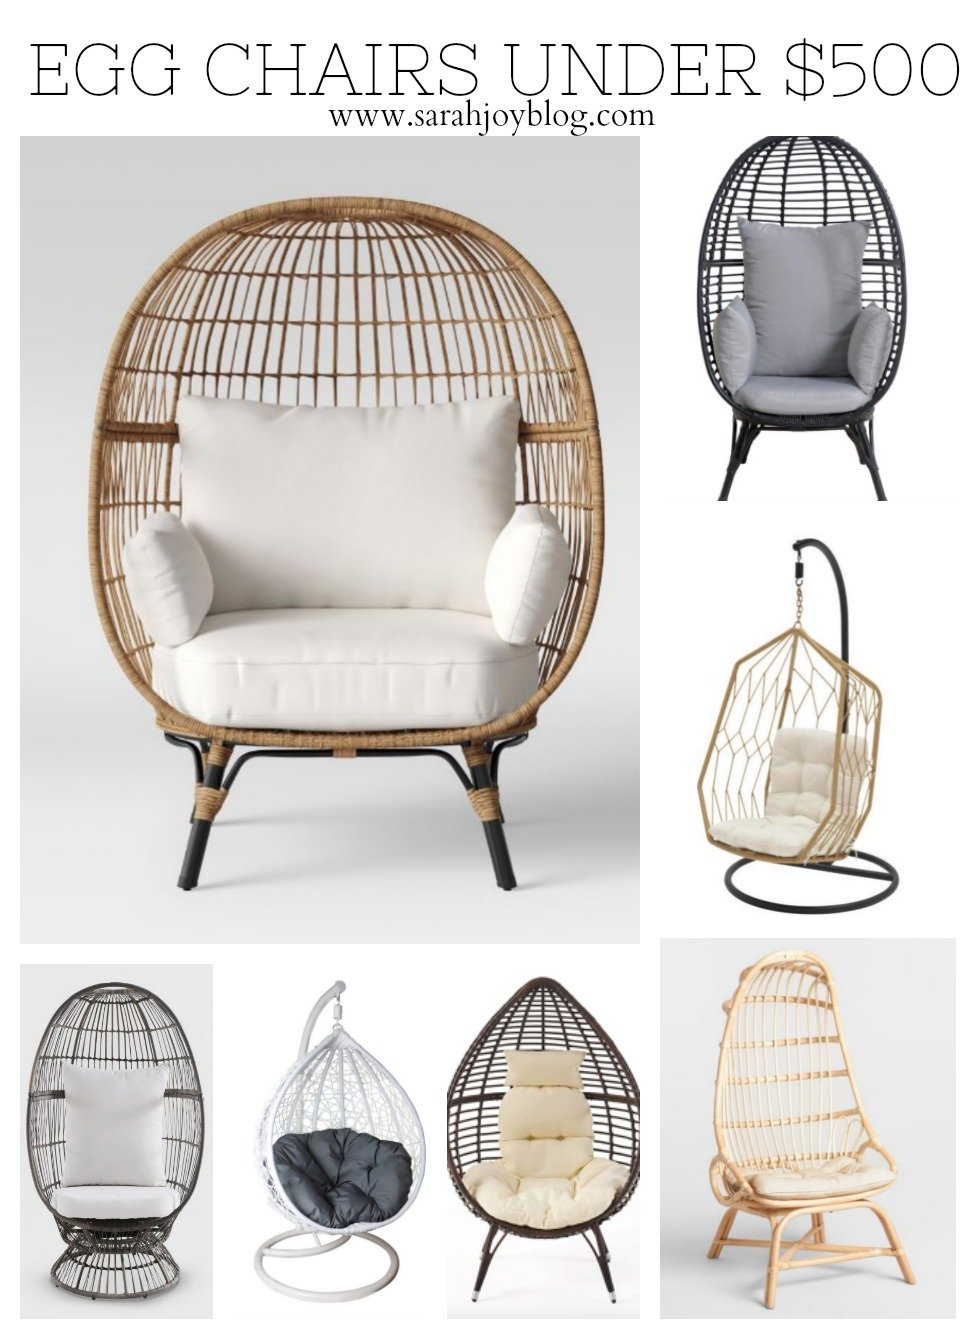 Egg Chairs under $500. Cute outdoor summer decor!